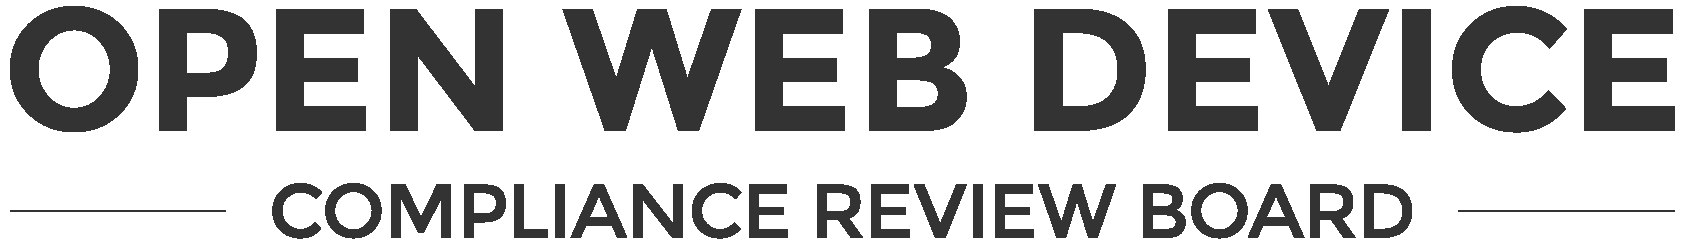 Open Web Device Compliance Review Board